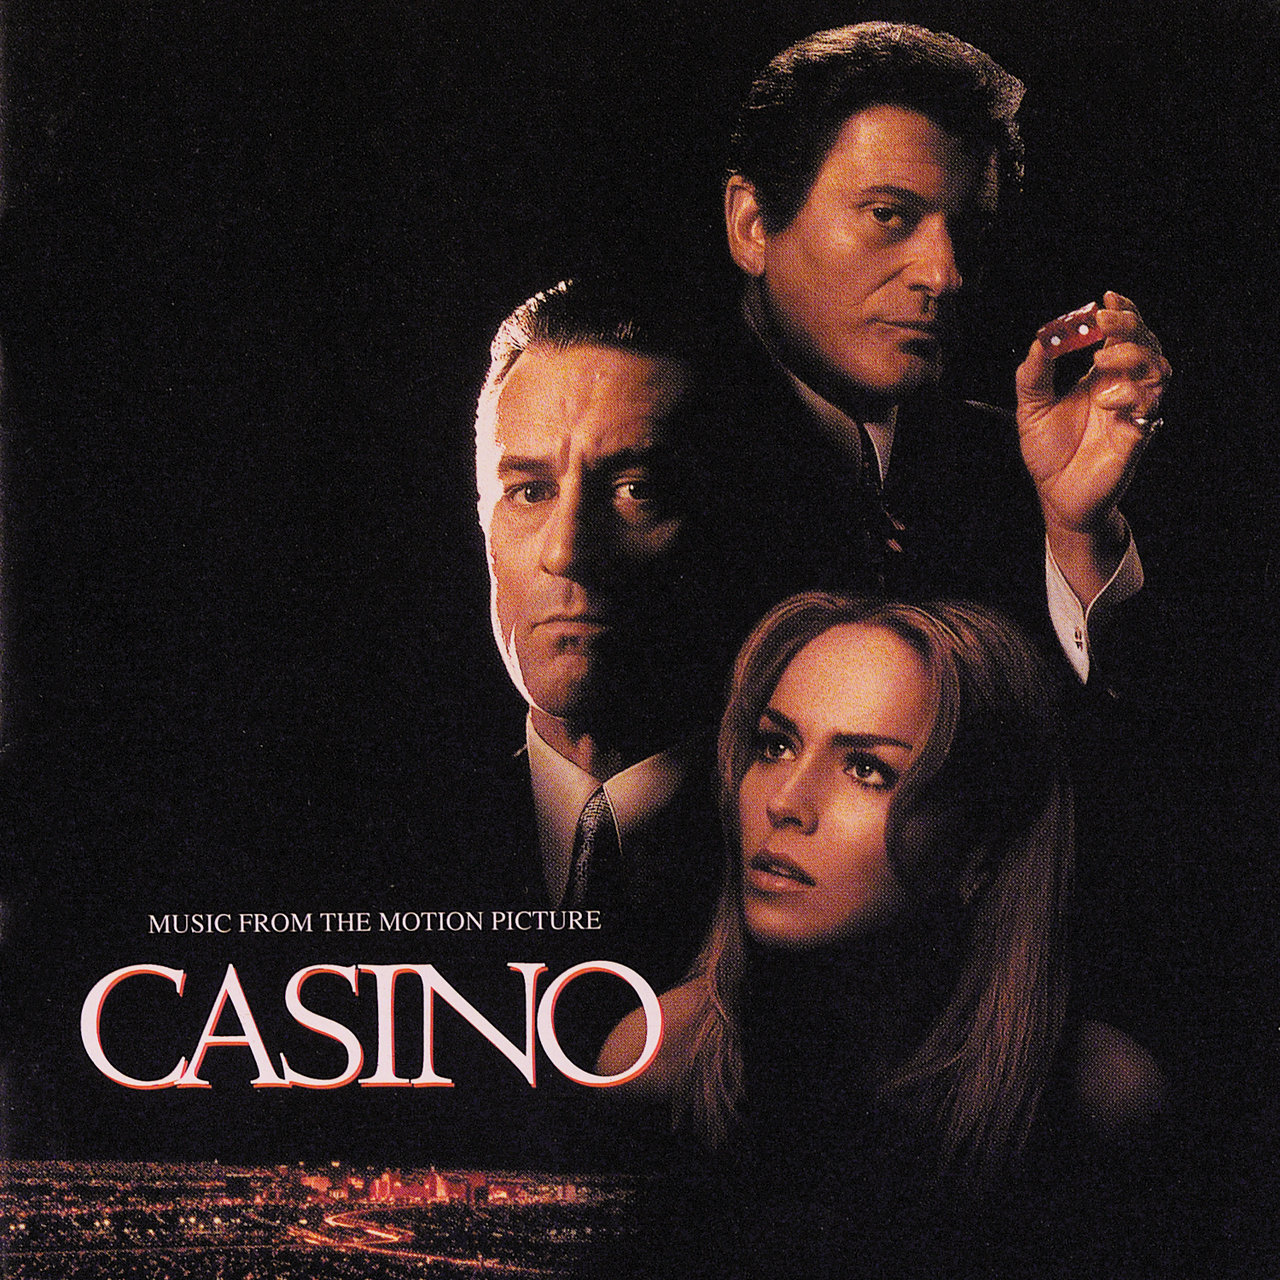 Casino film soundtrack what are some good sites on legalized gambling